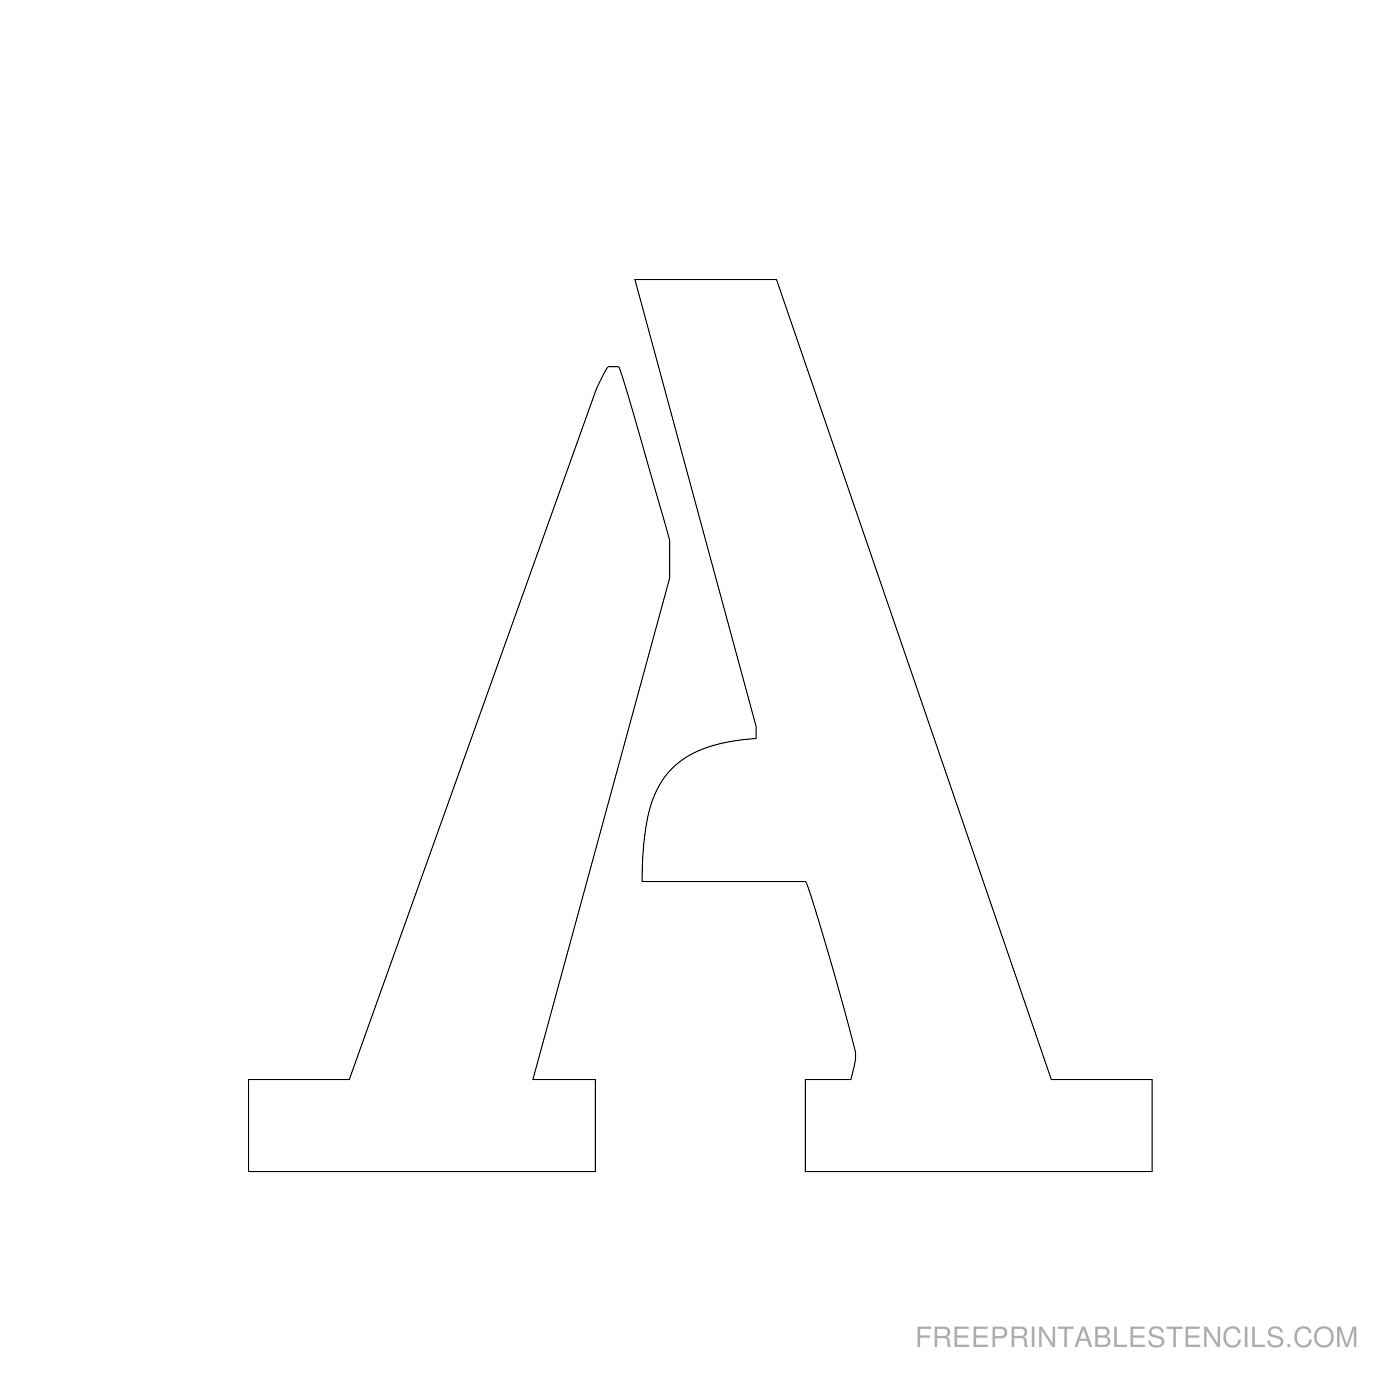 Printable 4 Inch Letter Stencils A-Z   Free Printable Stencils - Free Printable 4 Inch Block Letters